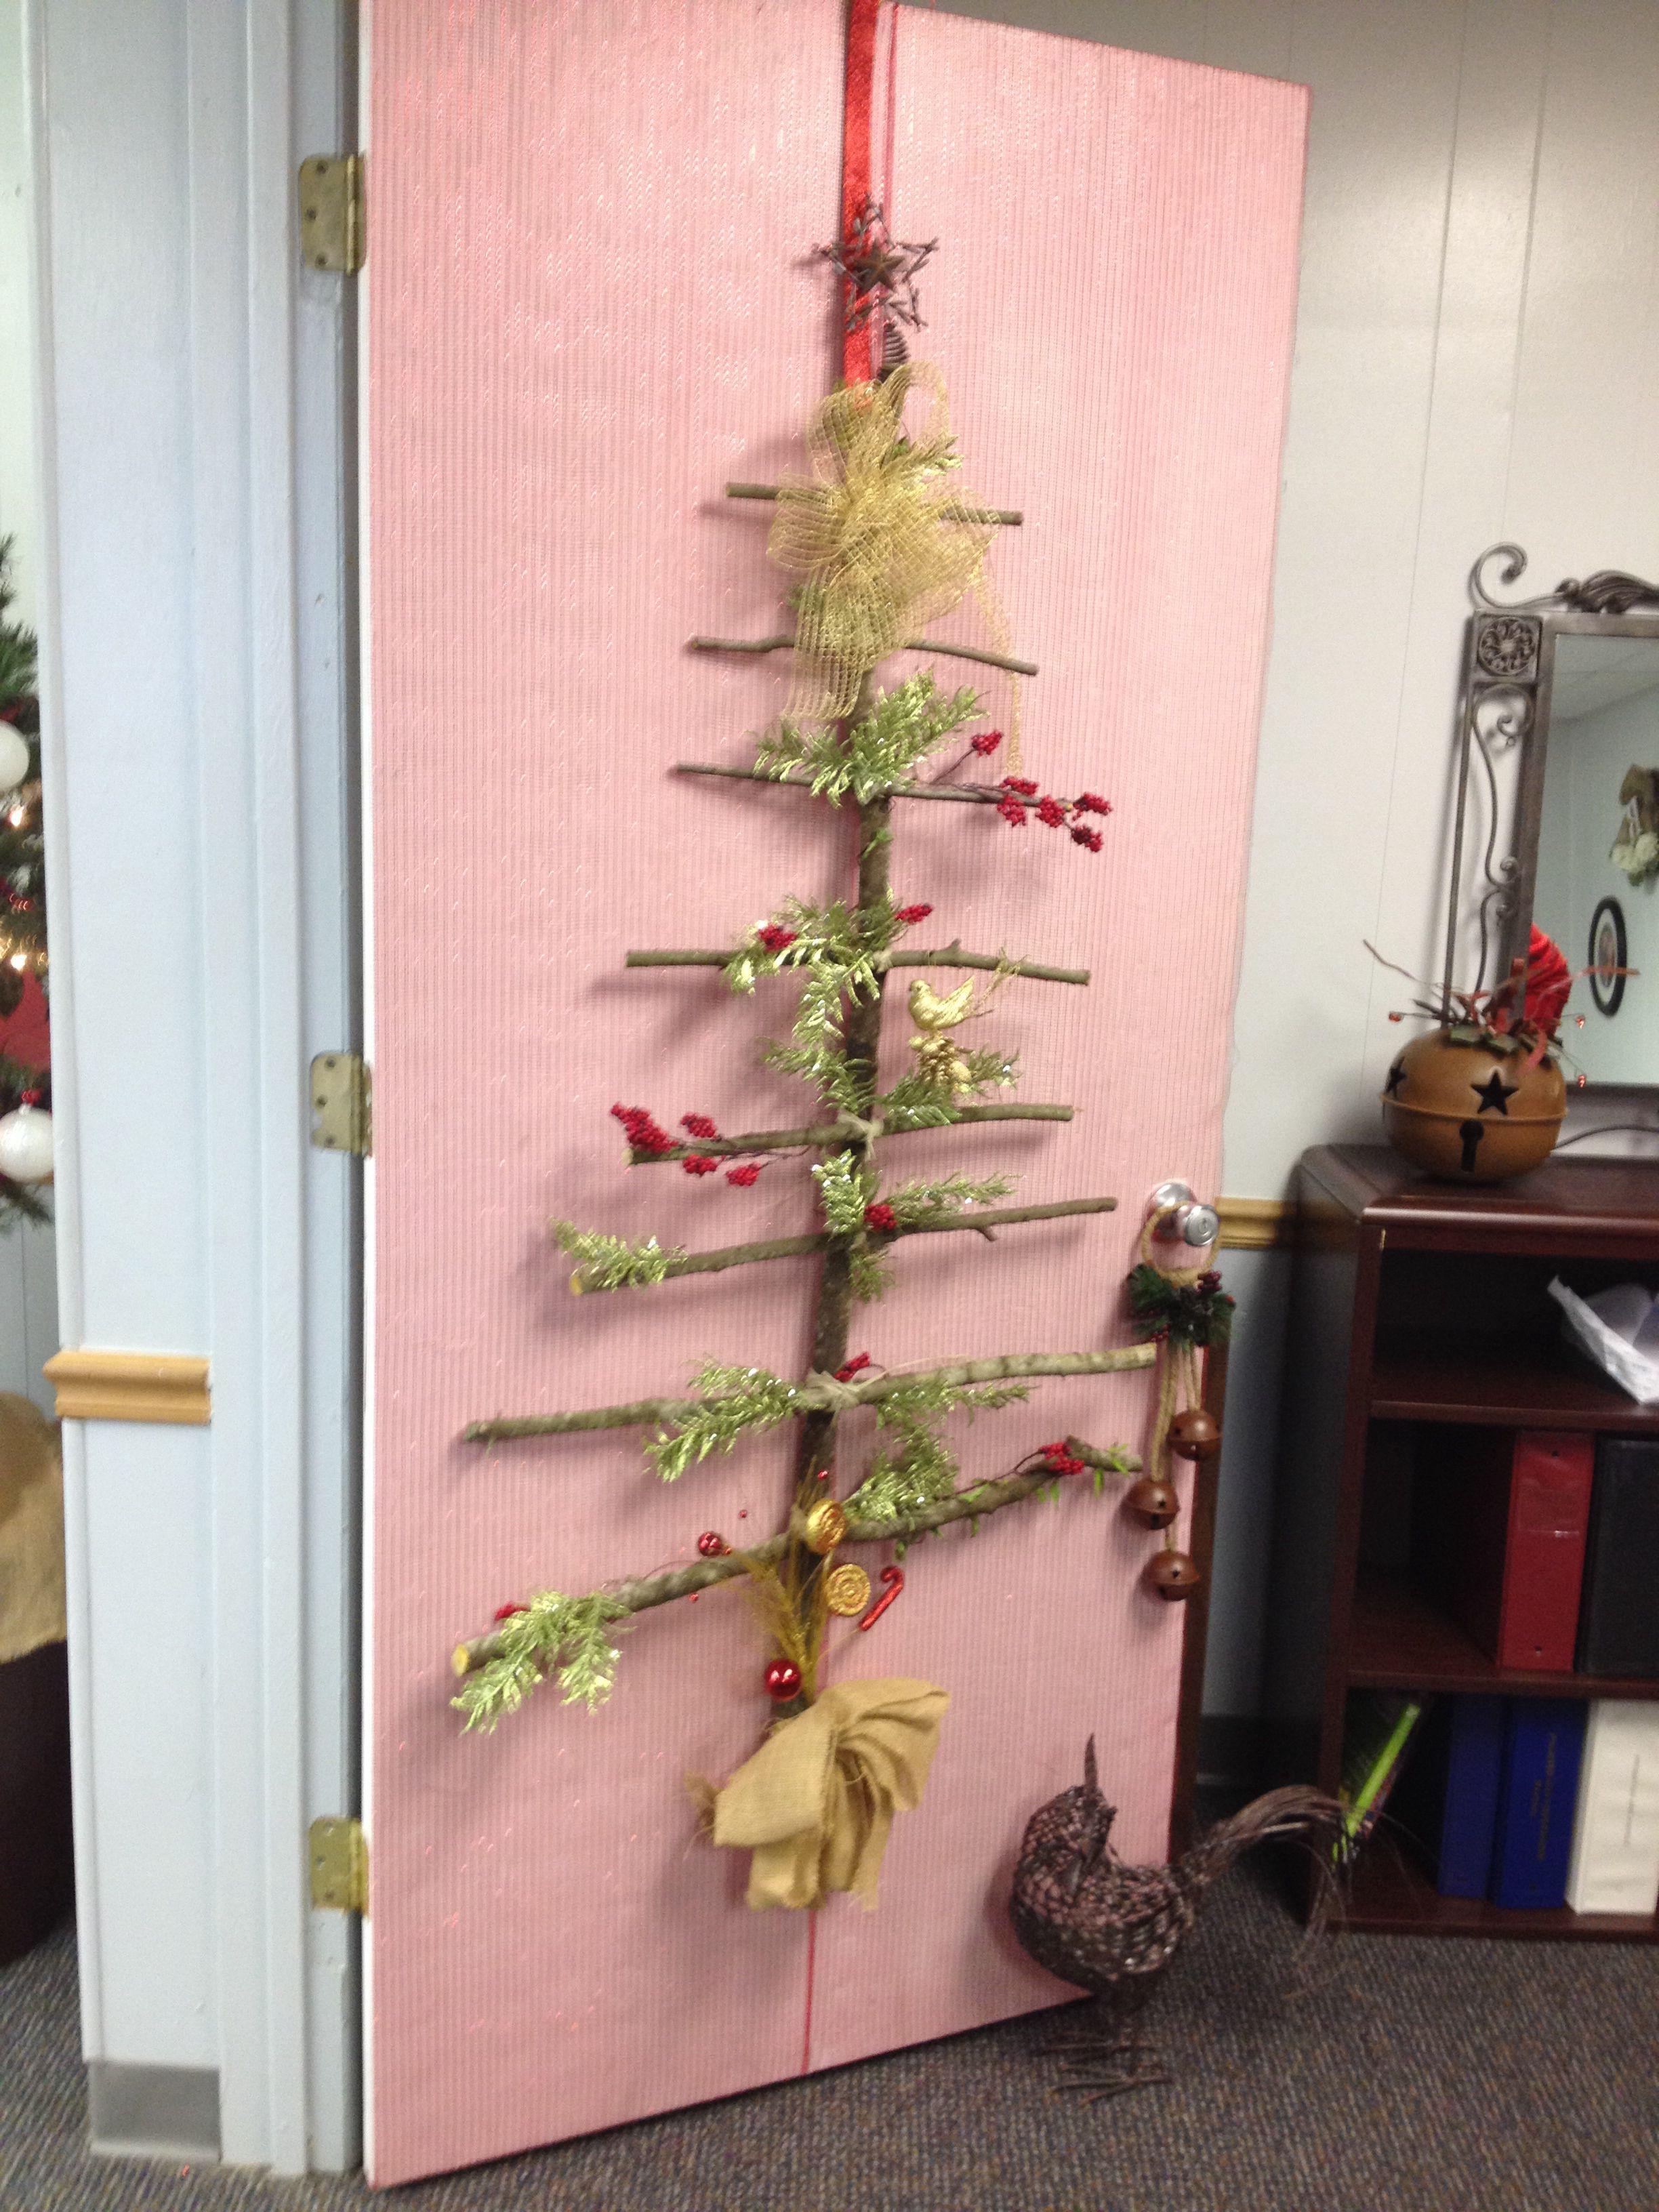 Office door decoration contest Christmas Tree 2013